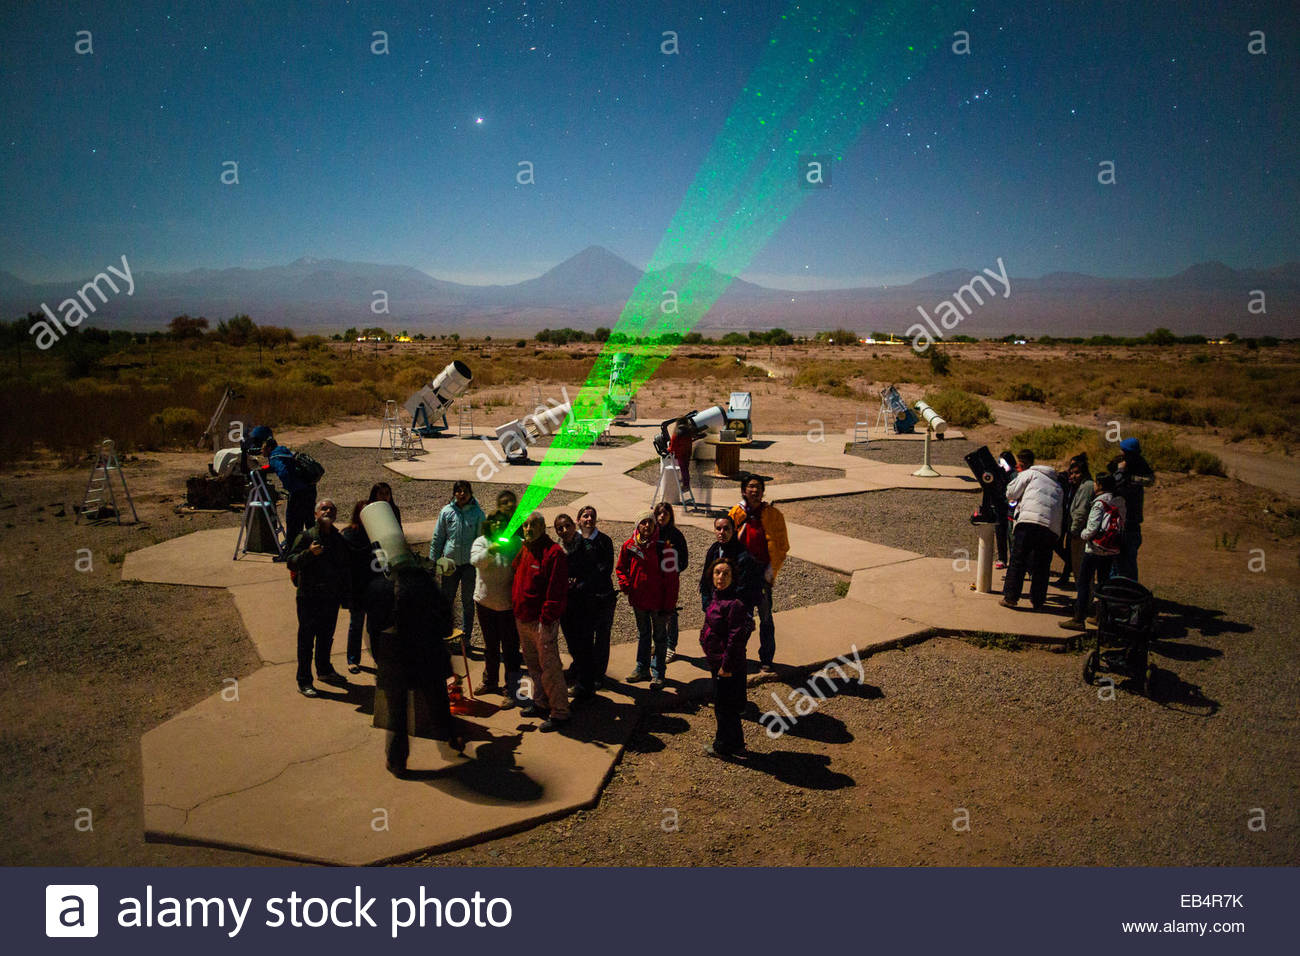 Tourists attend an astronomy lecture and observation outside San Pedro de Atacama, Chile. - Stock Image